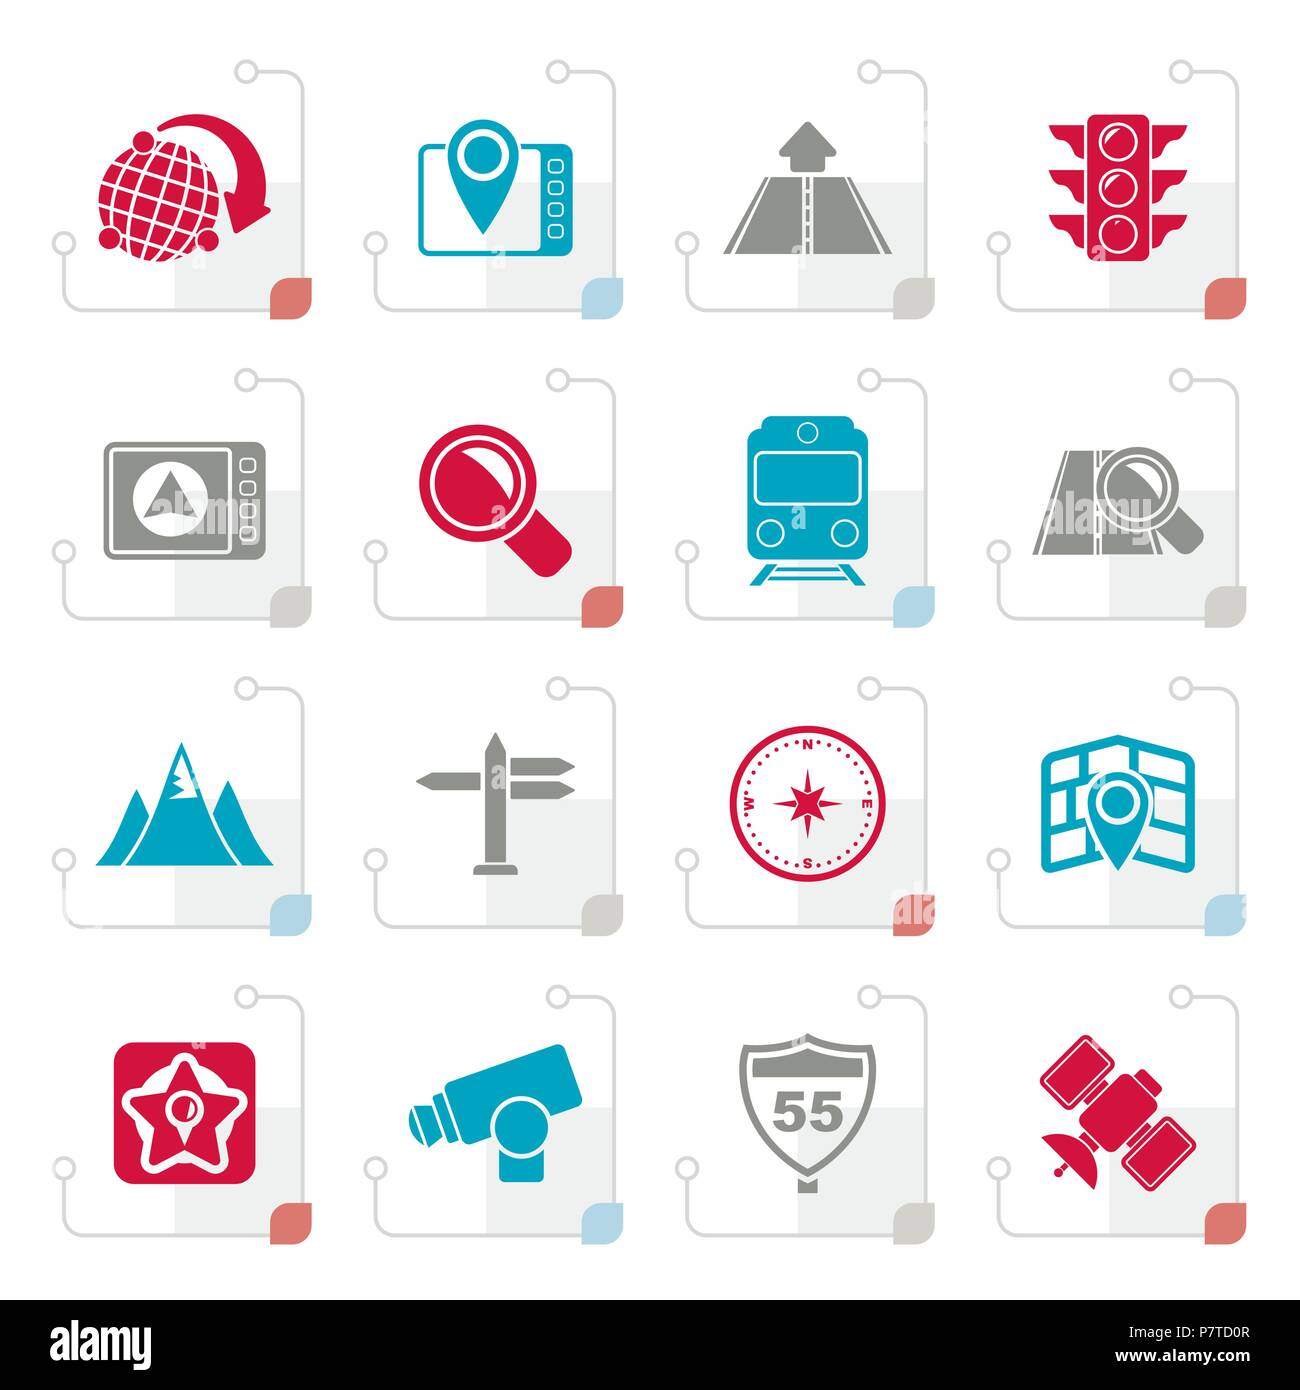 Stylized Map, navigation and Location Icons -vector icon set - Stock Vector